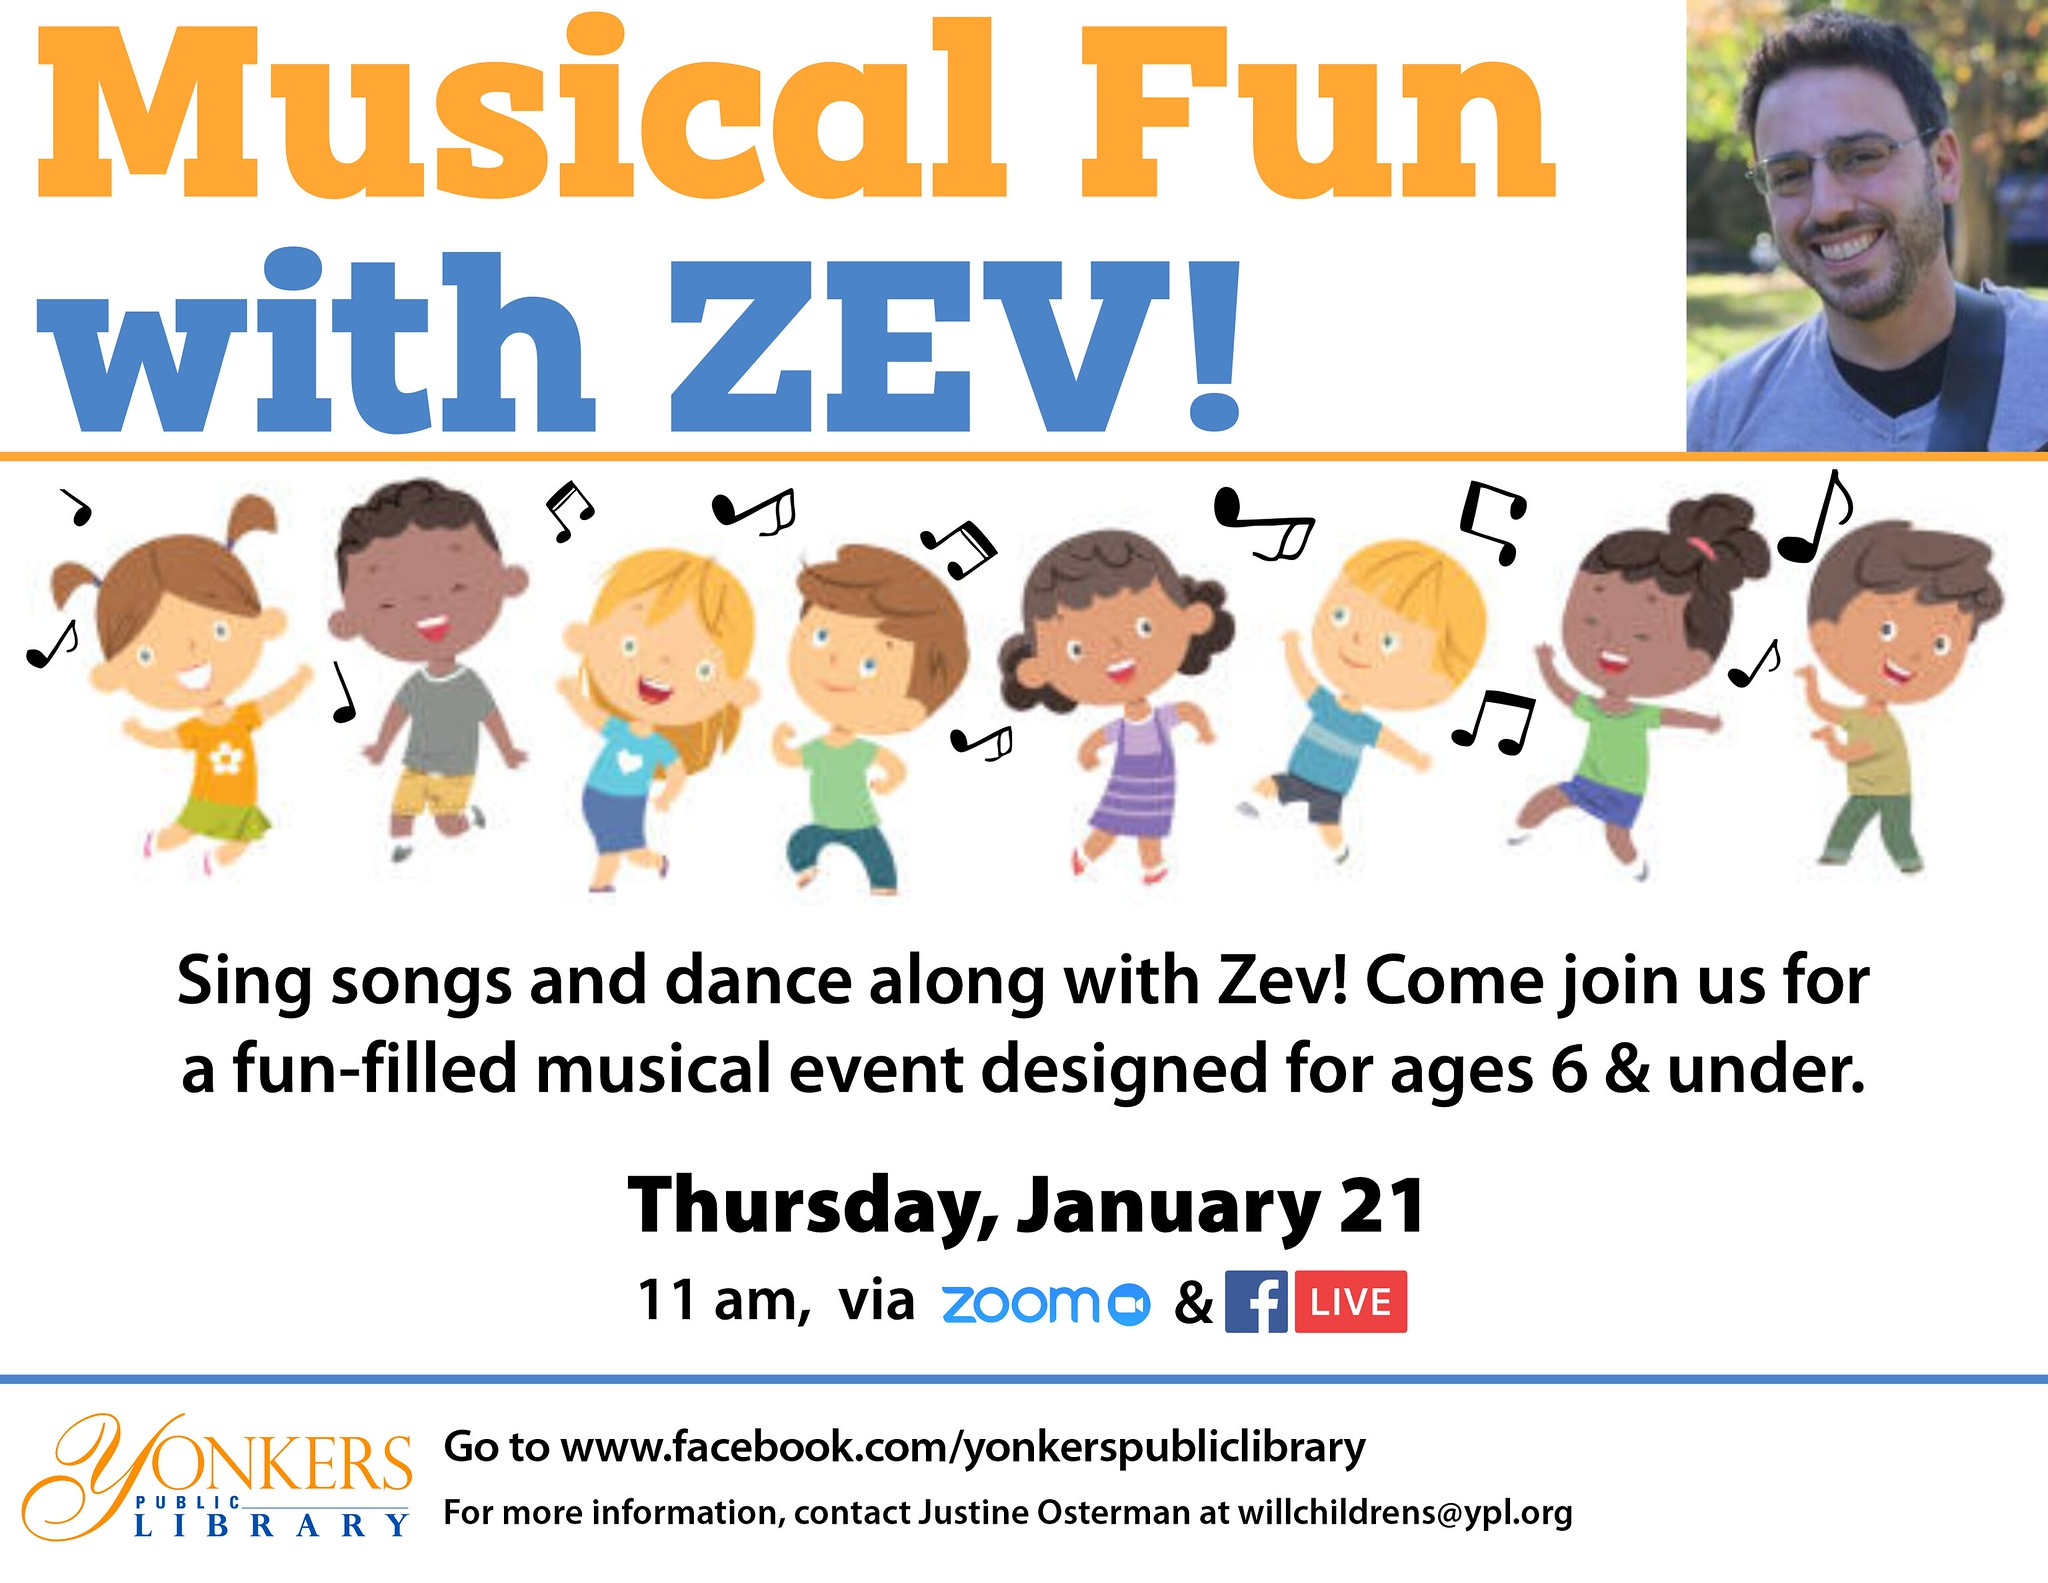 Musical Fun with Zev! image